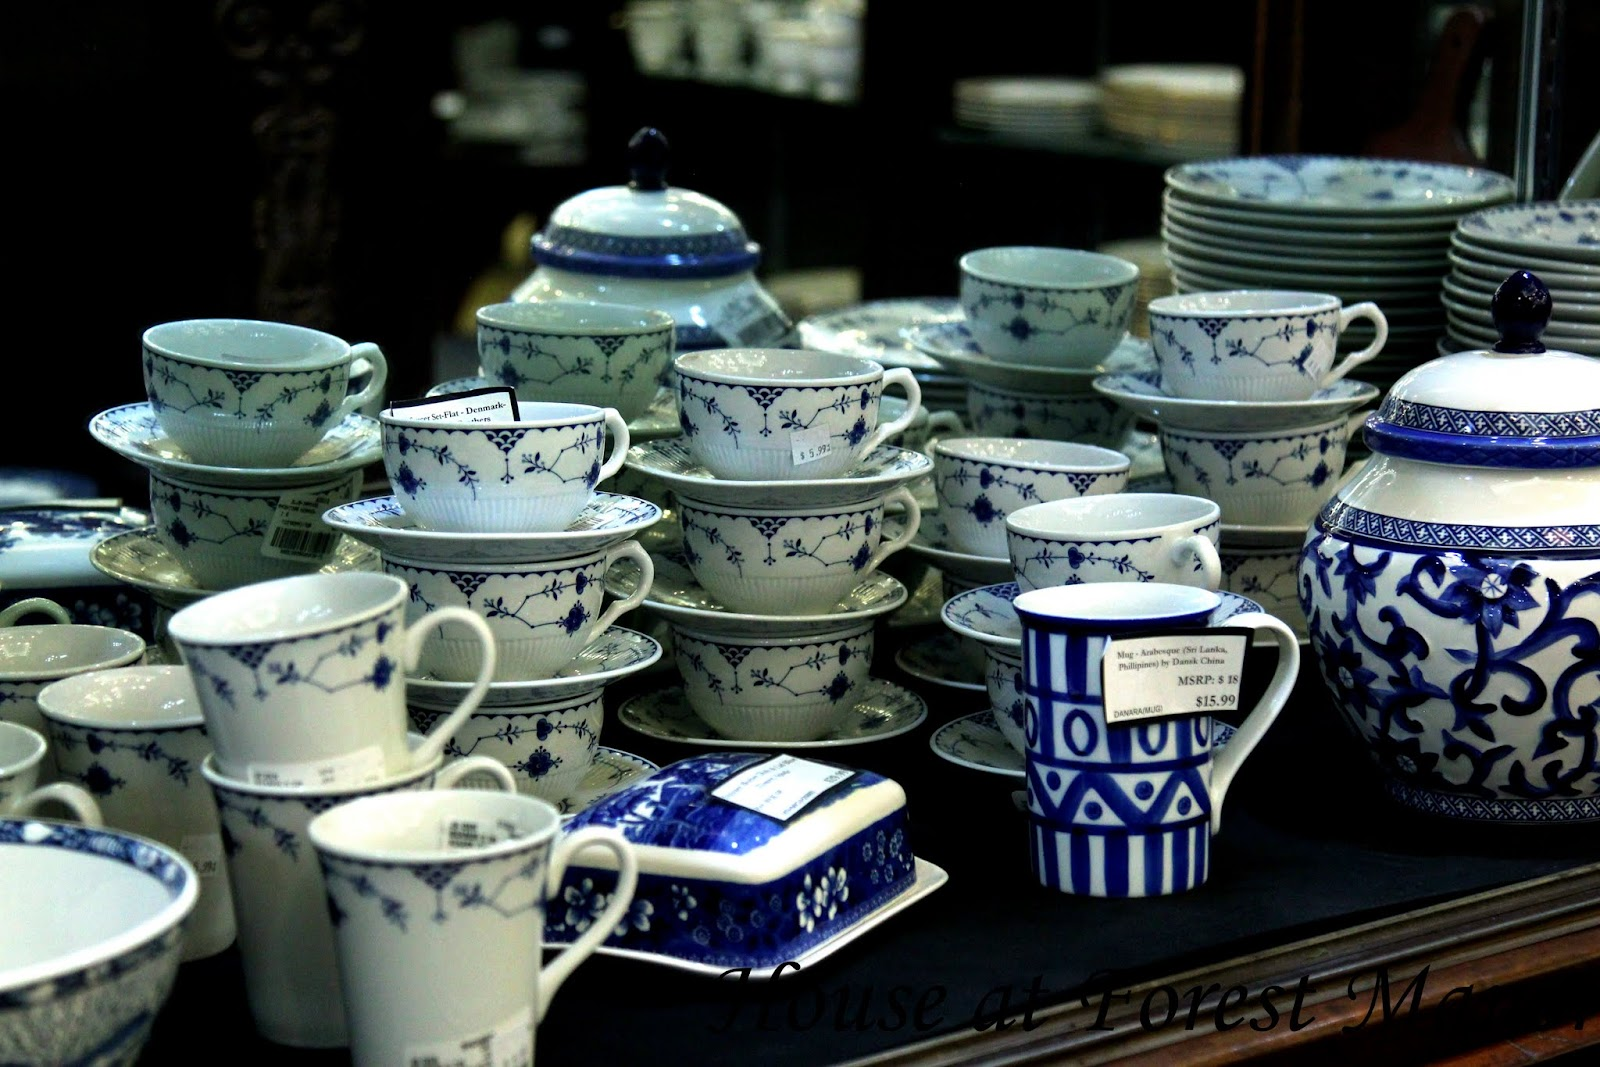 I chose to share this picture first because this pattern is so similar to my everyday dishes that Iu0027ve had for over 20 years now. Itu0027s one pattern that Iu0027ve ... & House at Forest Manor: Blue and White at Replacements Ltd.